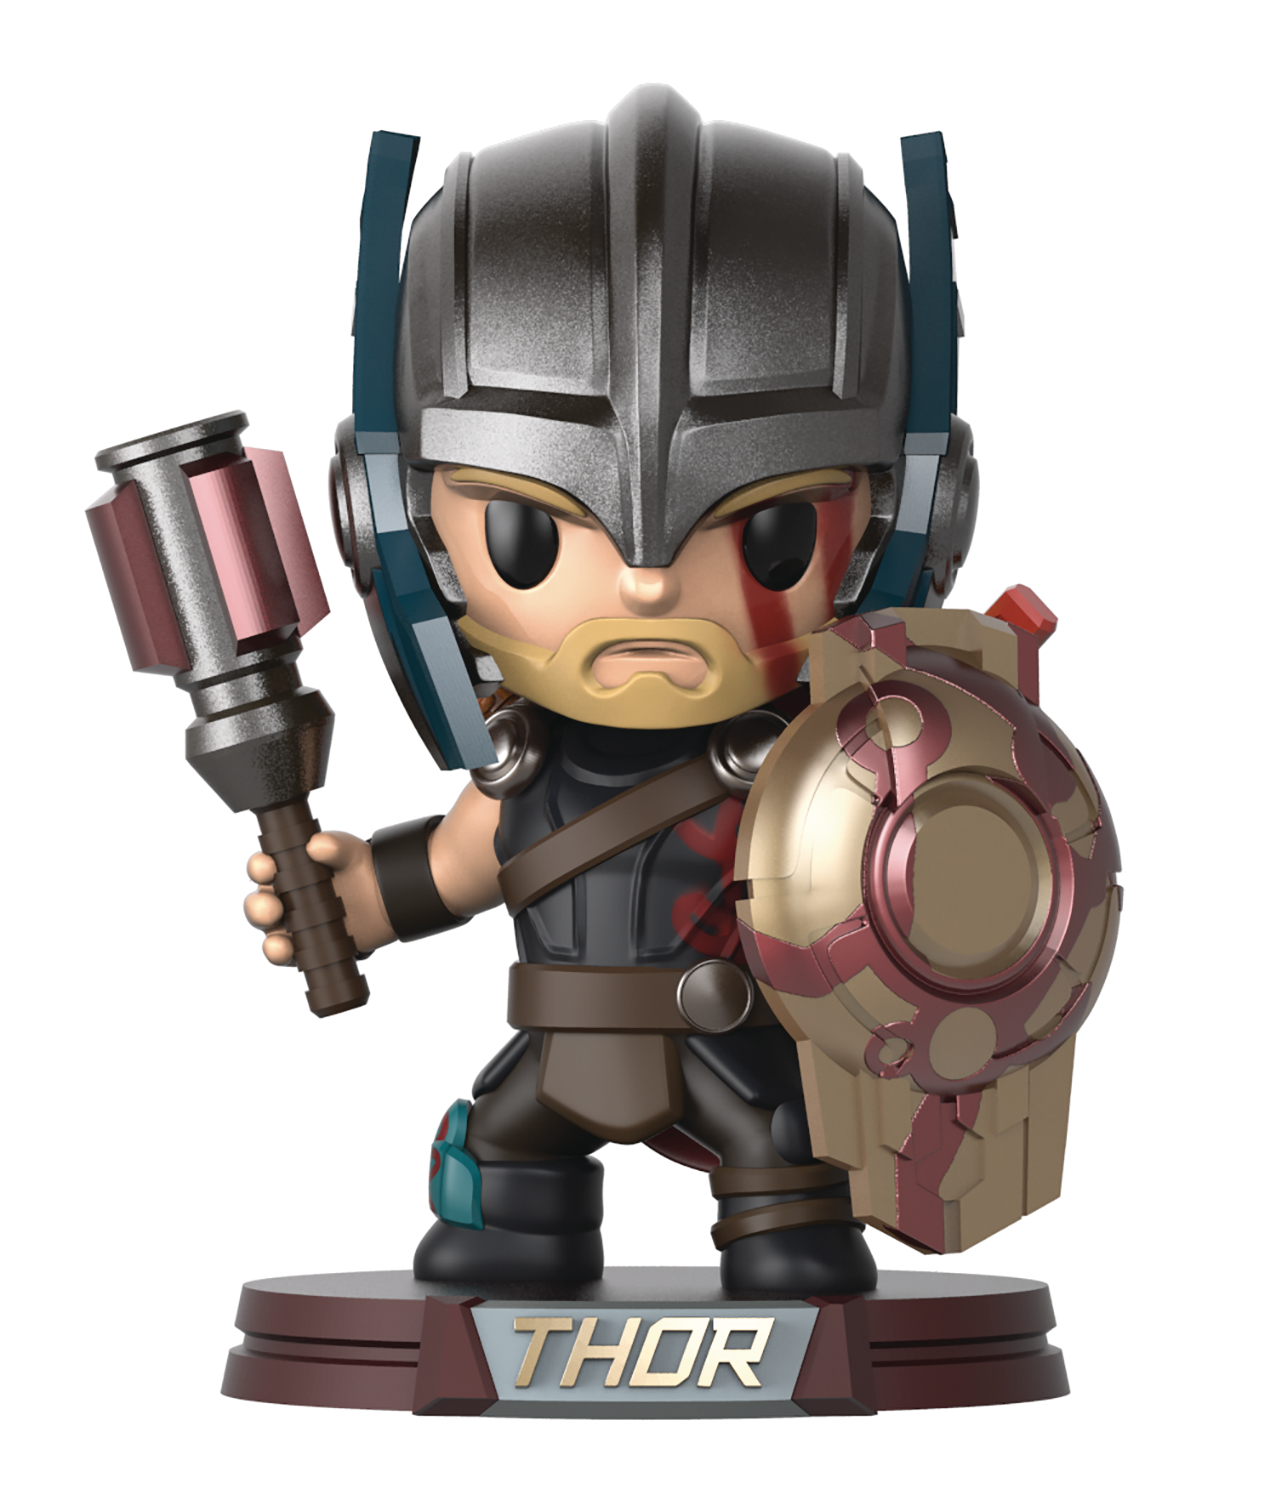 GO BIG MARVEL THOR RAGNAROK THOR 14IN VINYL FIG